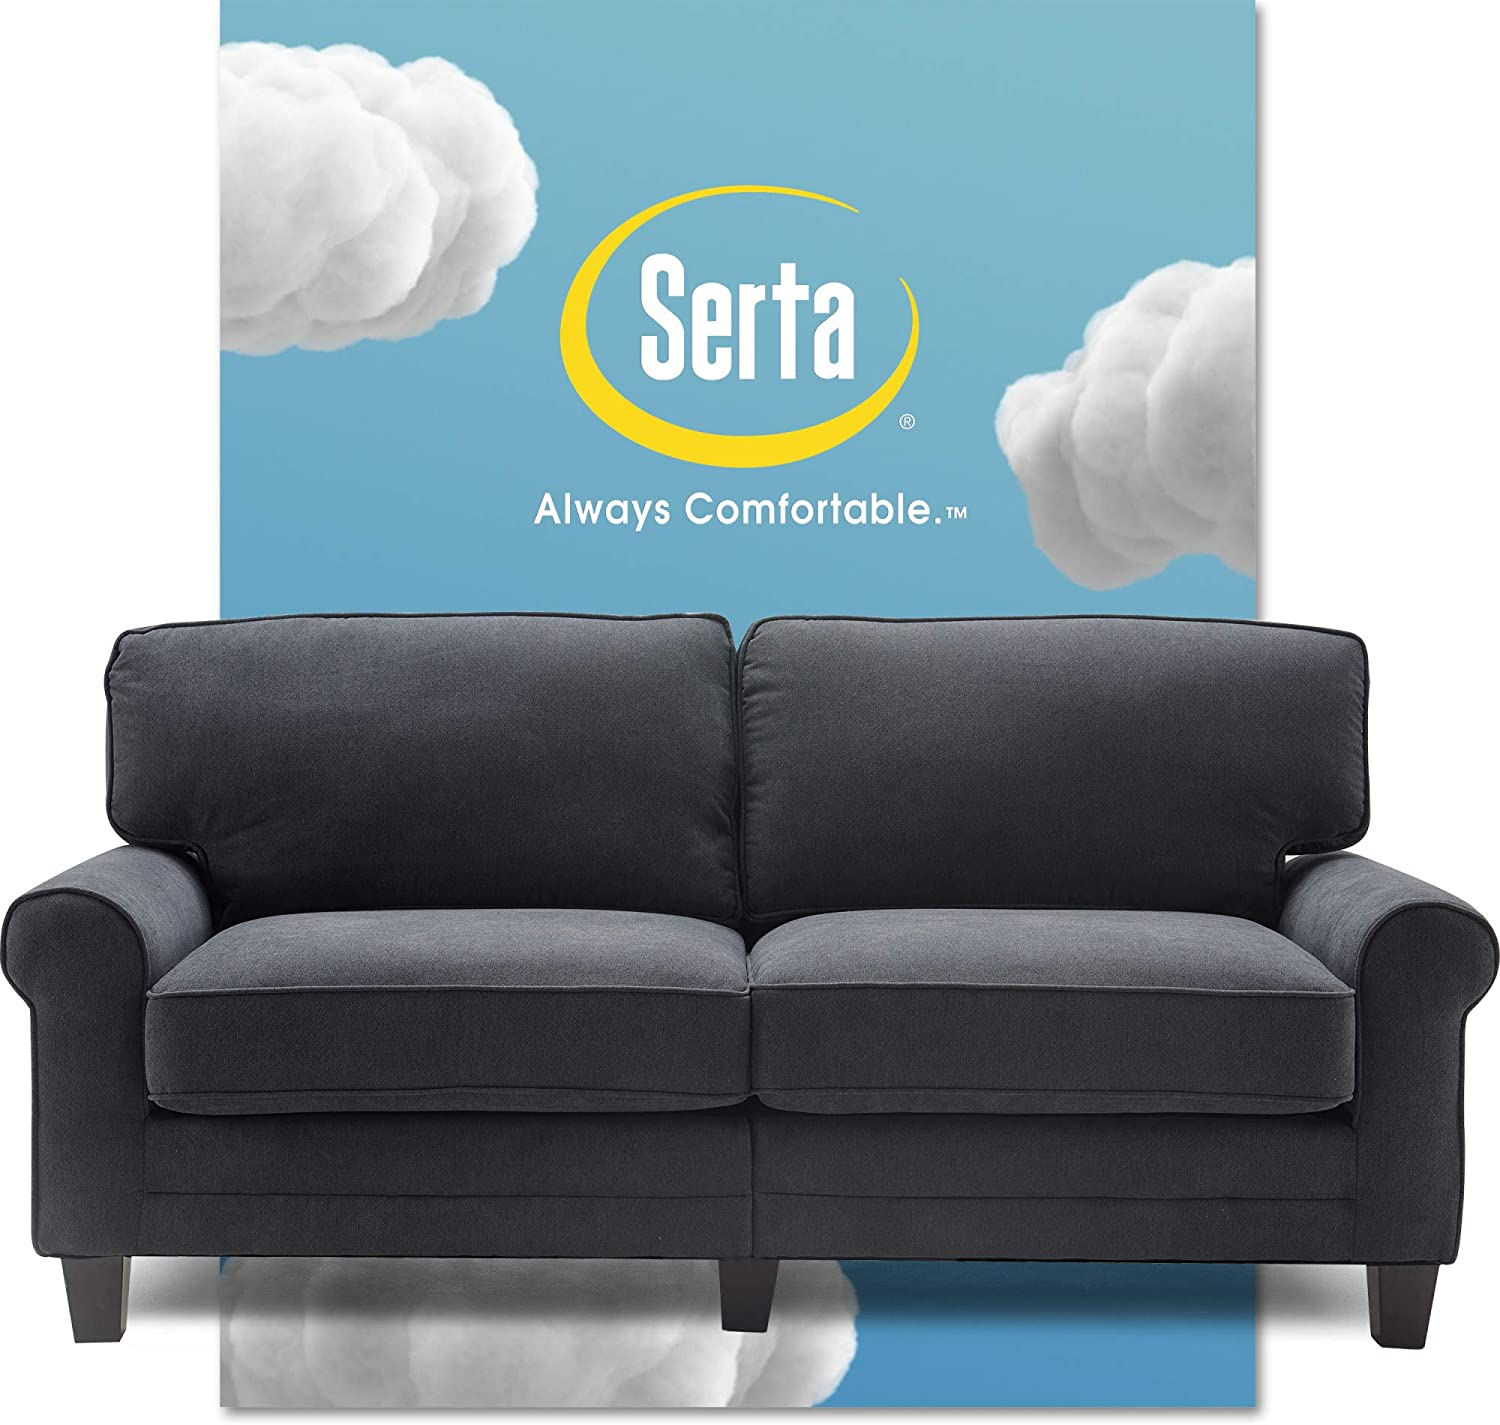 Serta Copenhagen Sofa Couch for Two People, Pillowed Back Cushions and Rounded Arms, Durable Modern Upholstered Fabric, 73